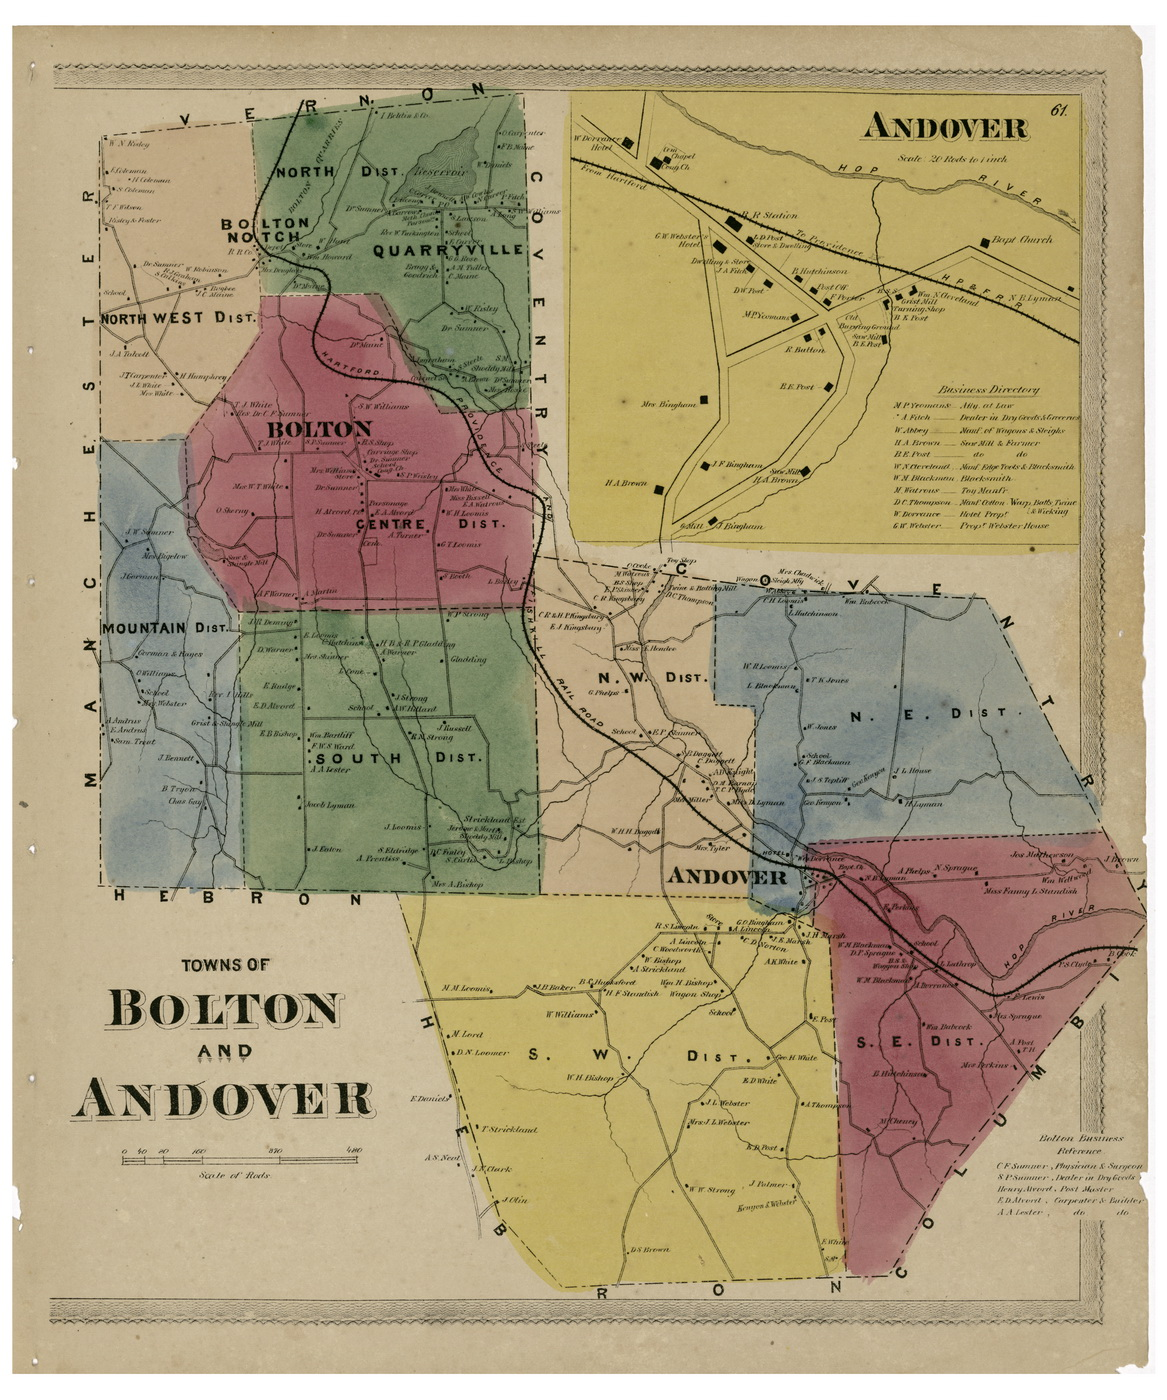 tolland county We regret that we are unable to perform personal research for anybody tolland county located in the northeastern part of connecticut, tolland county was originally formed on 13 october 1785 from portions of eastern hartford county and western windham county.